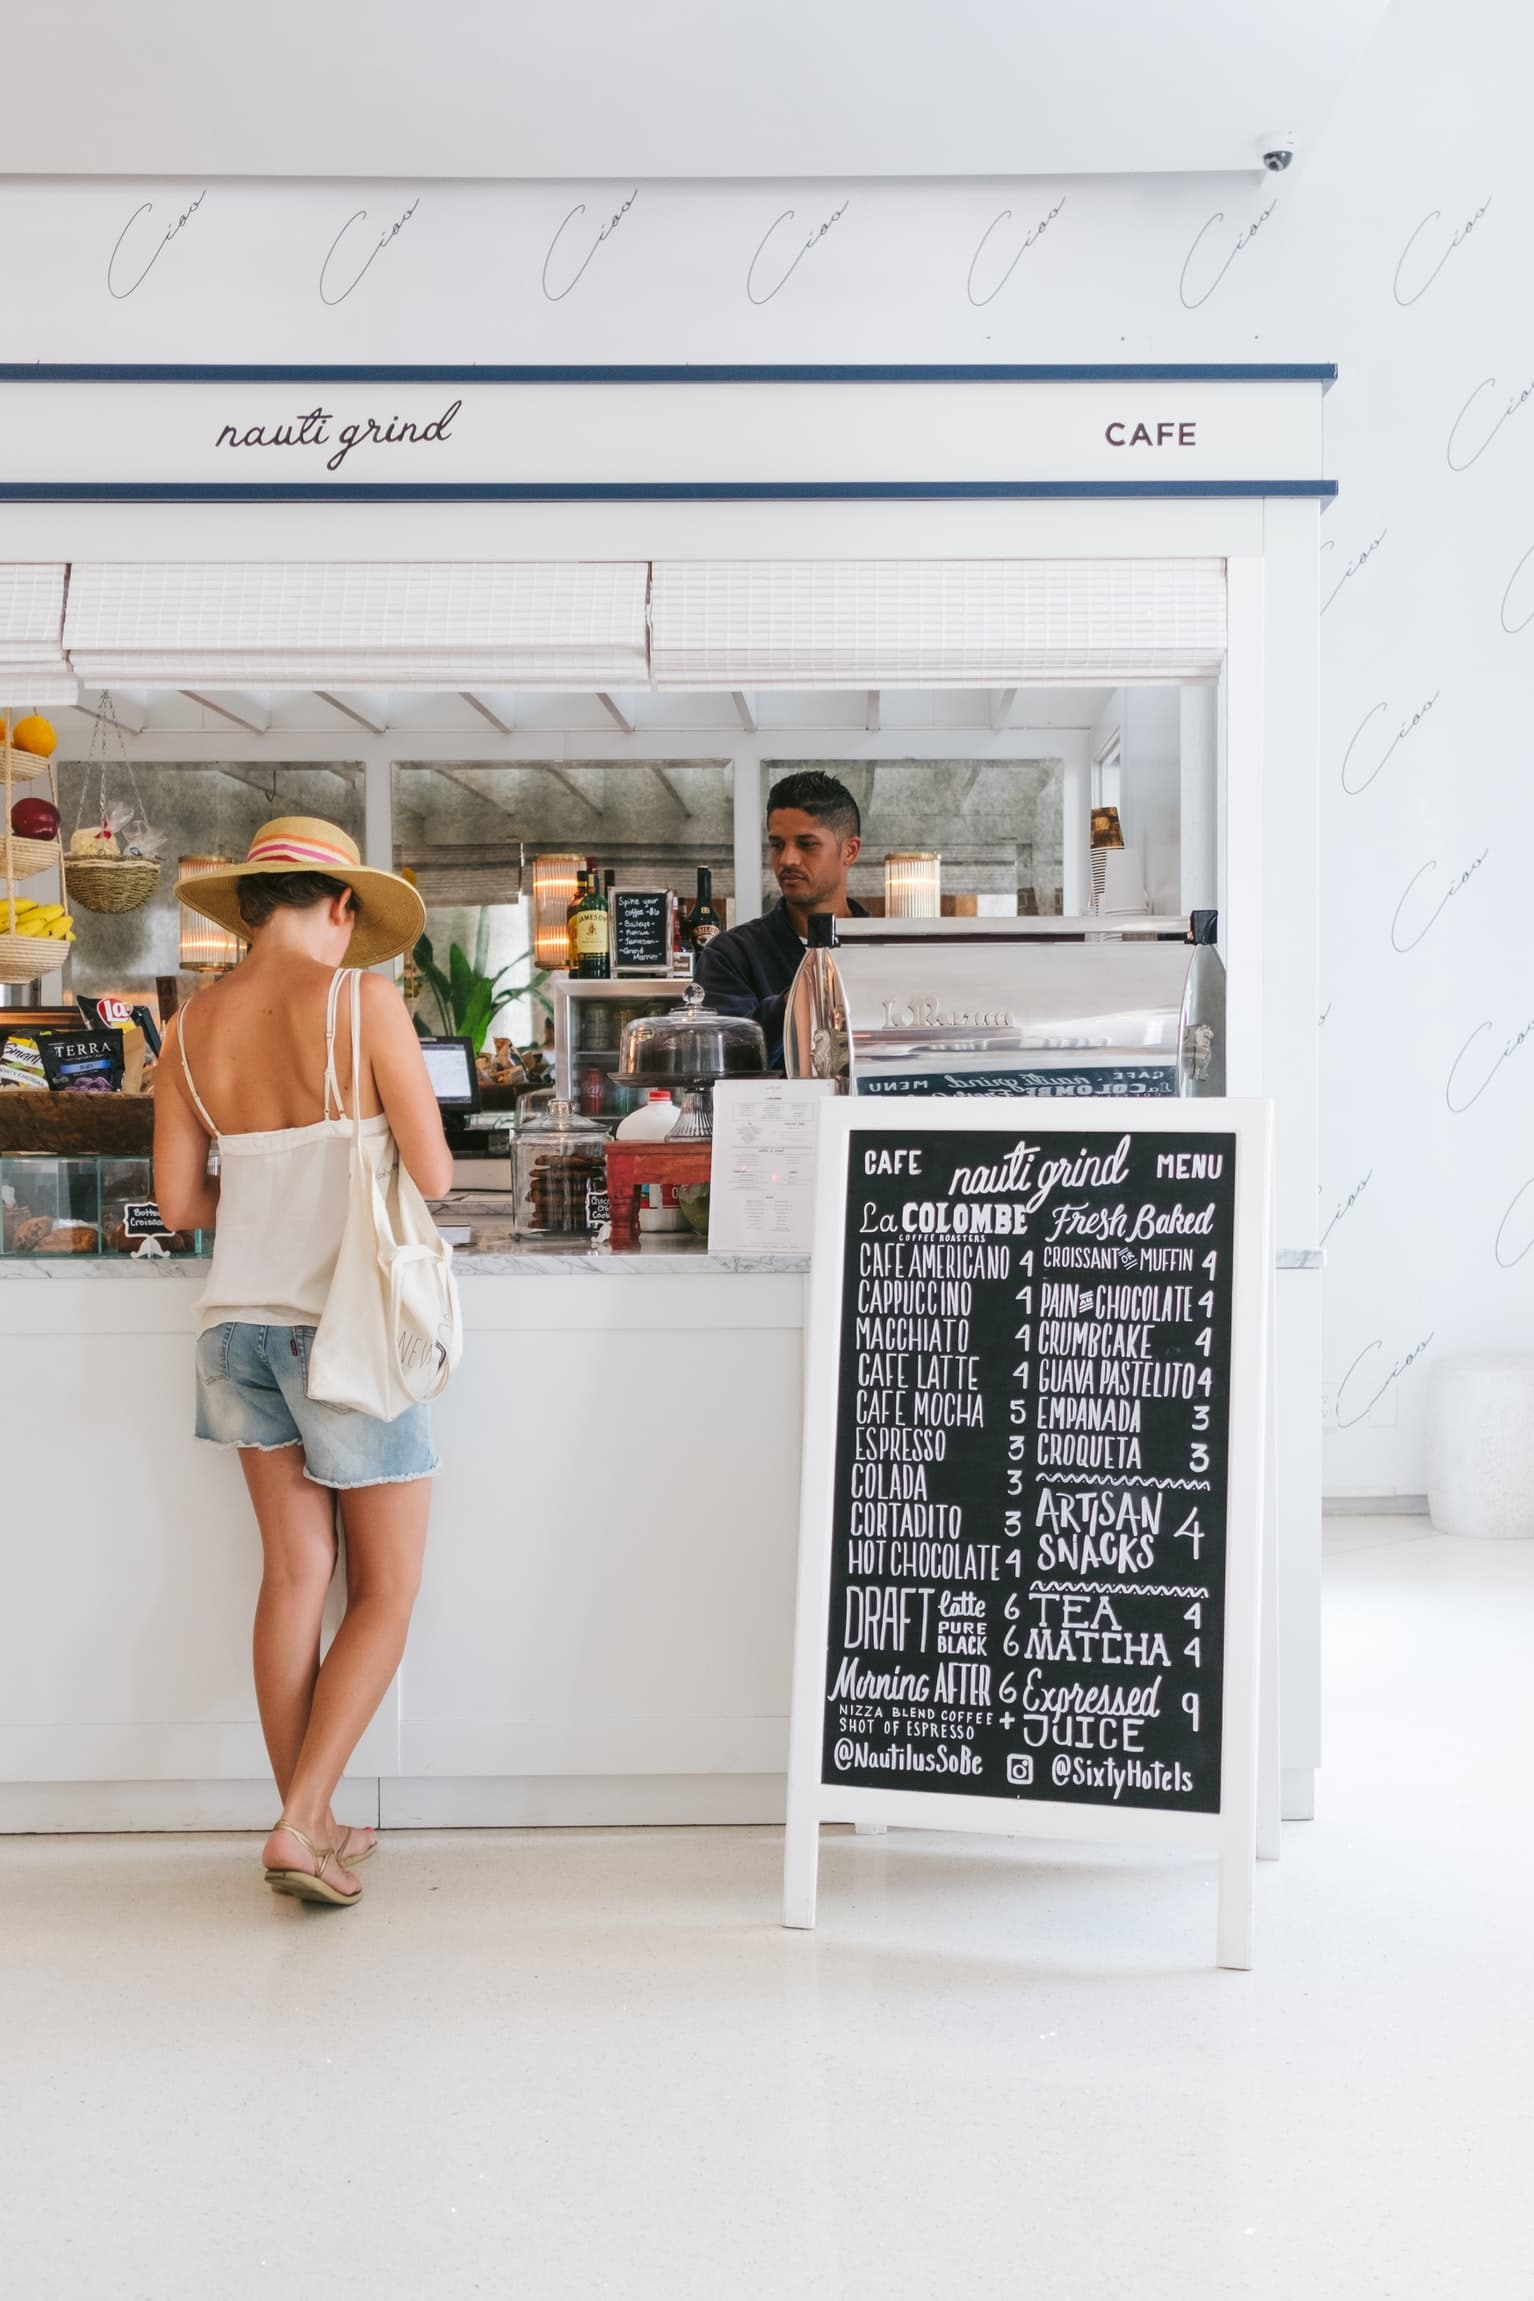 Pangea IoT blog: Woman buying from mobile ePOS in the Caribbean